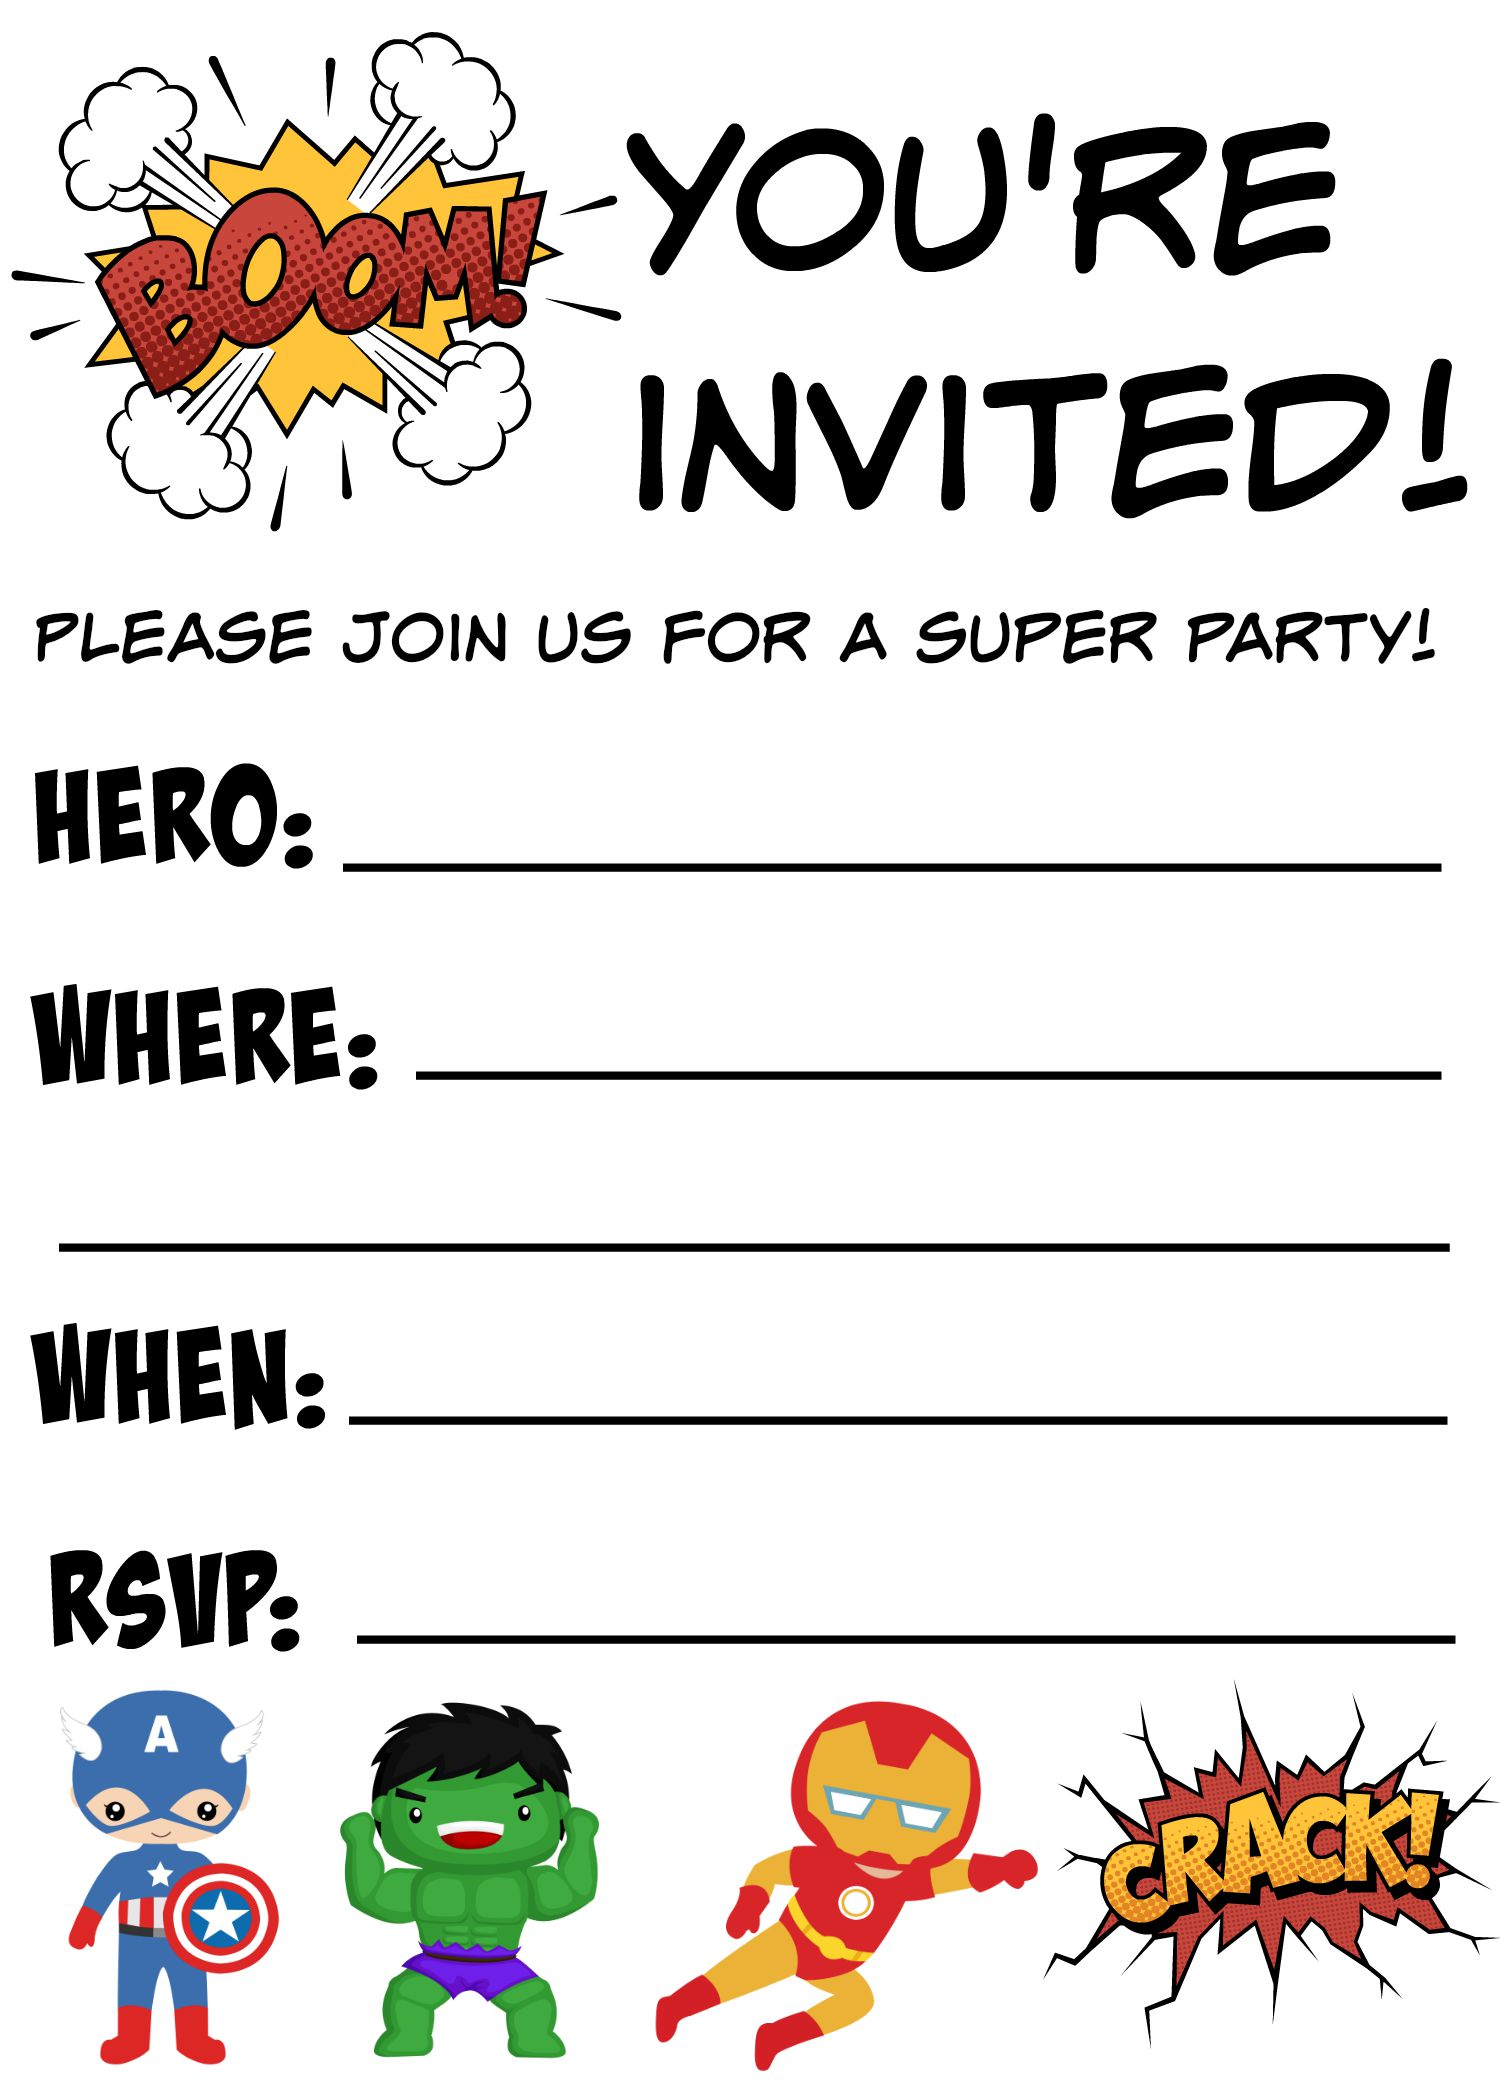 Epic image for free printable superhero invitations